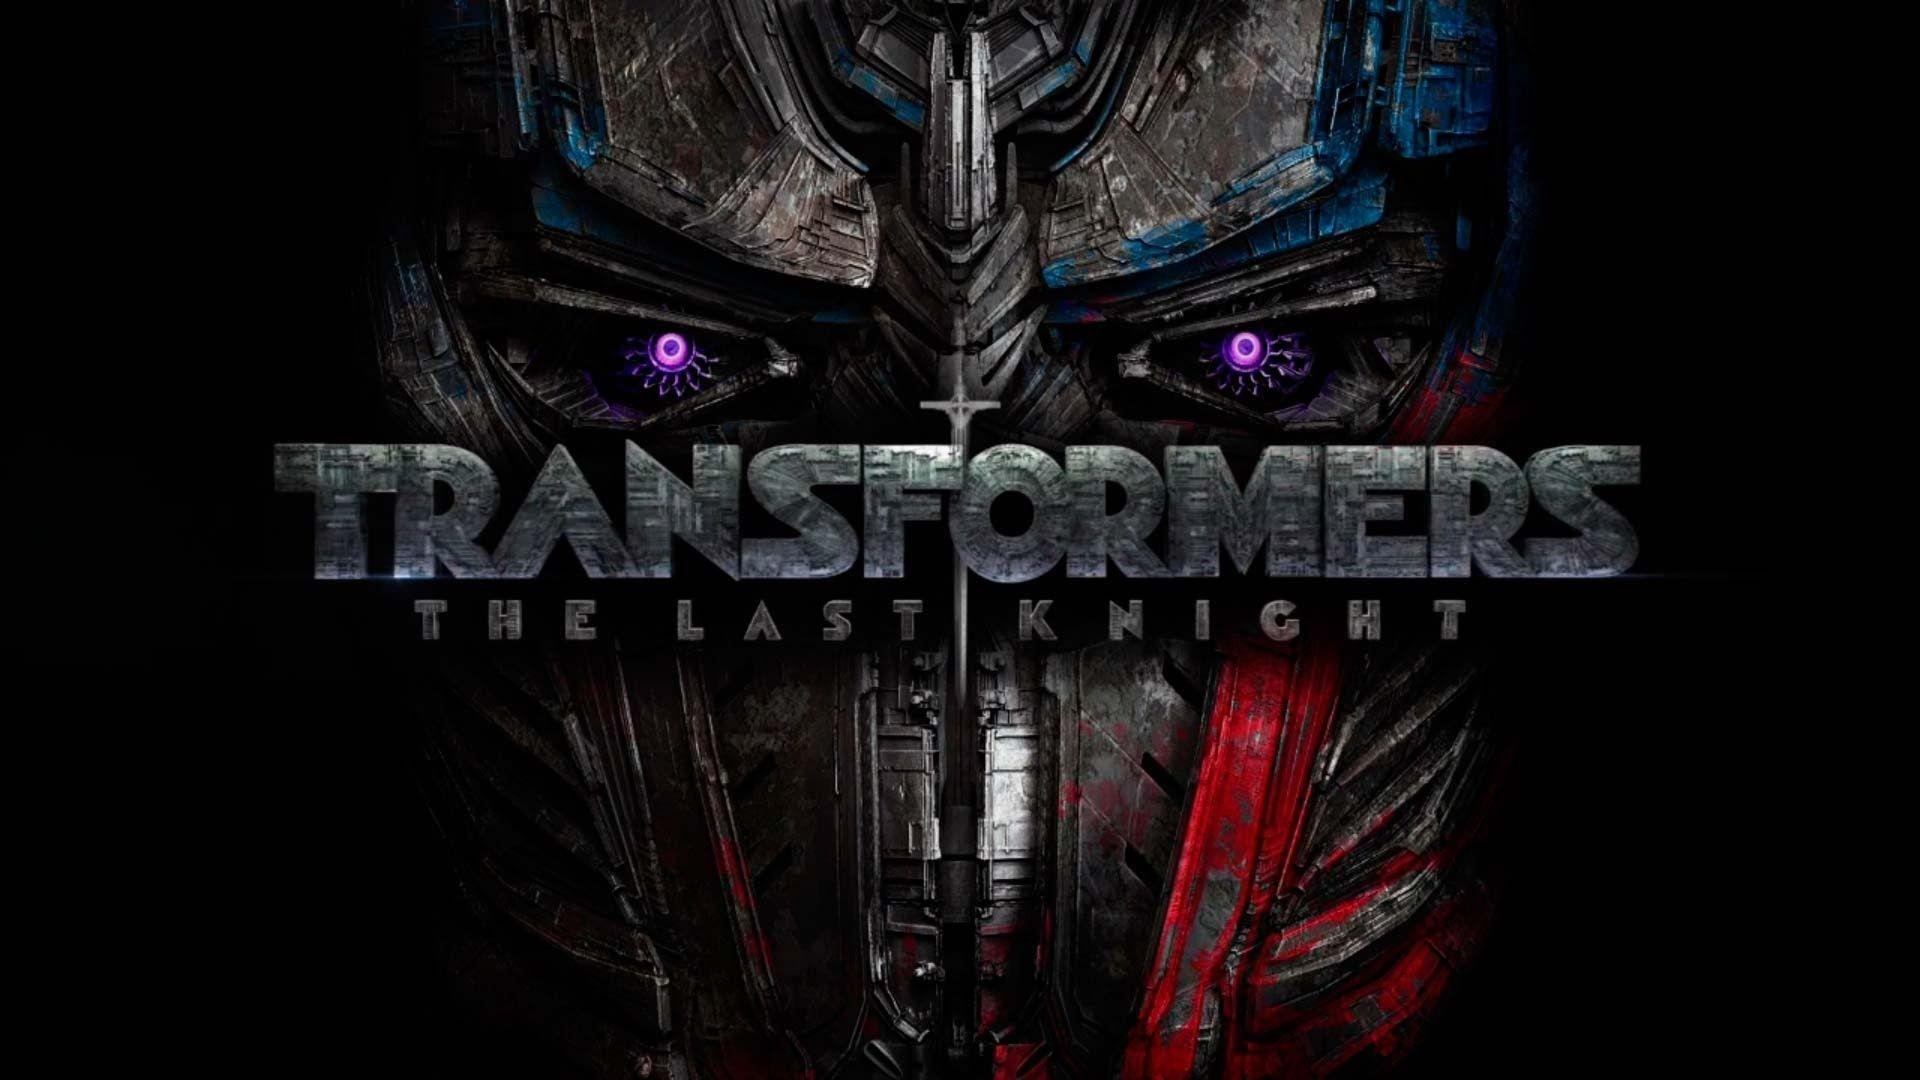 1920x1080 Transformers, Movie Posters, The Last Knight